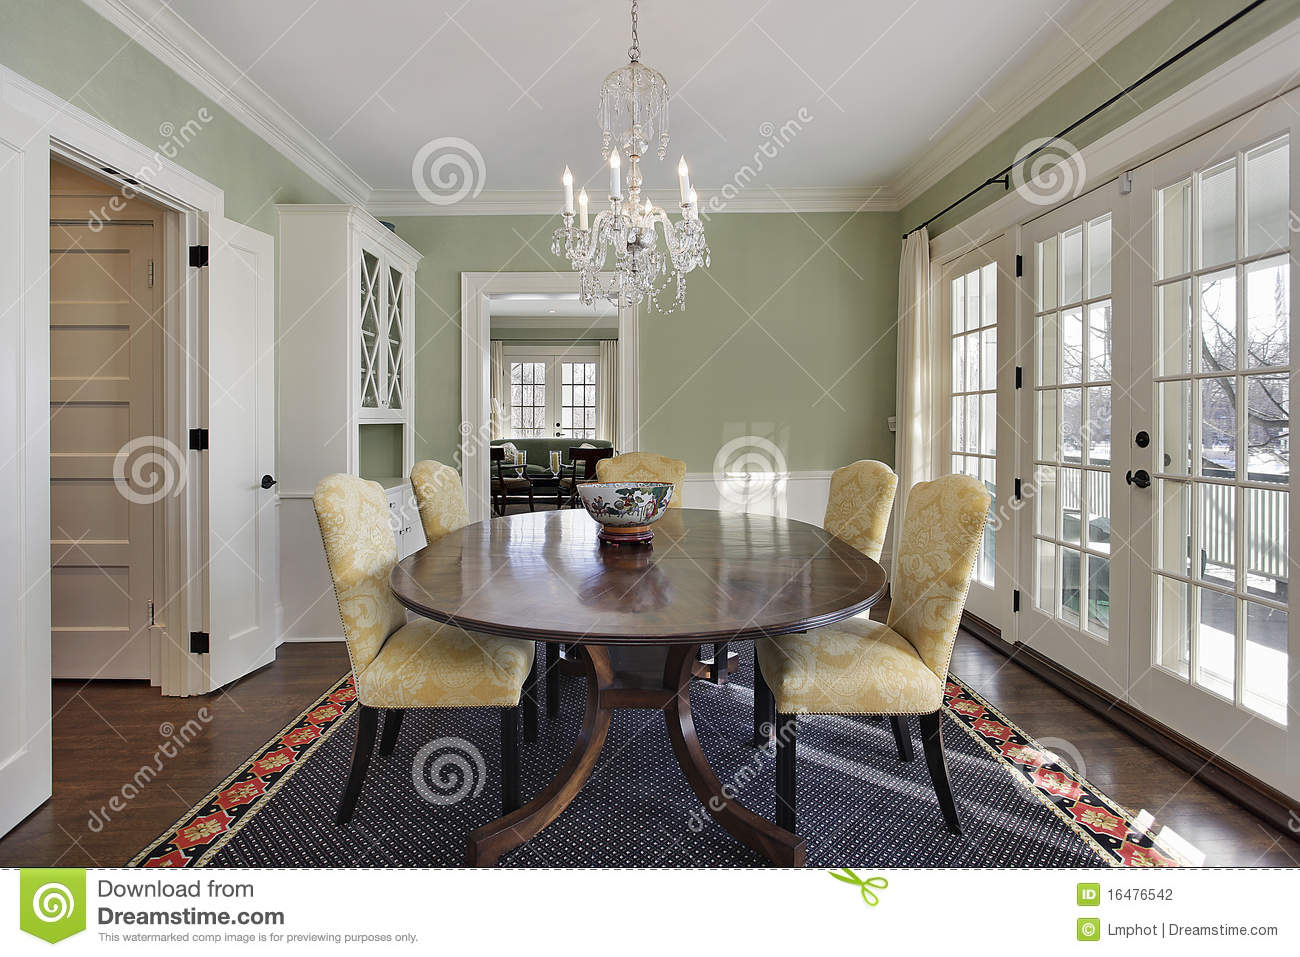 Dreaming inexperienced, Formal eating Stock Photography - Image: 16476542 - Dining Rooms Green Walls